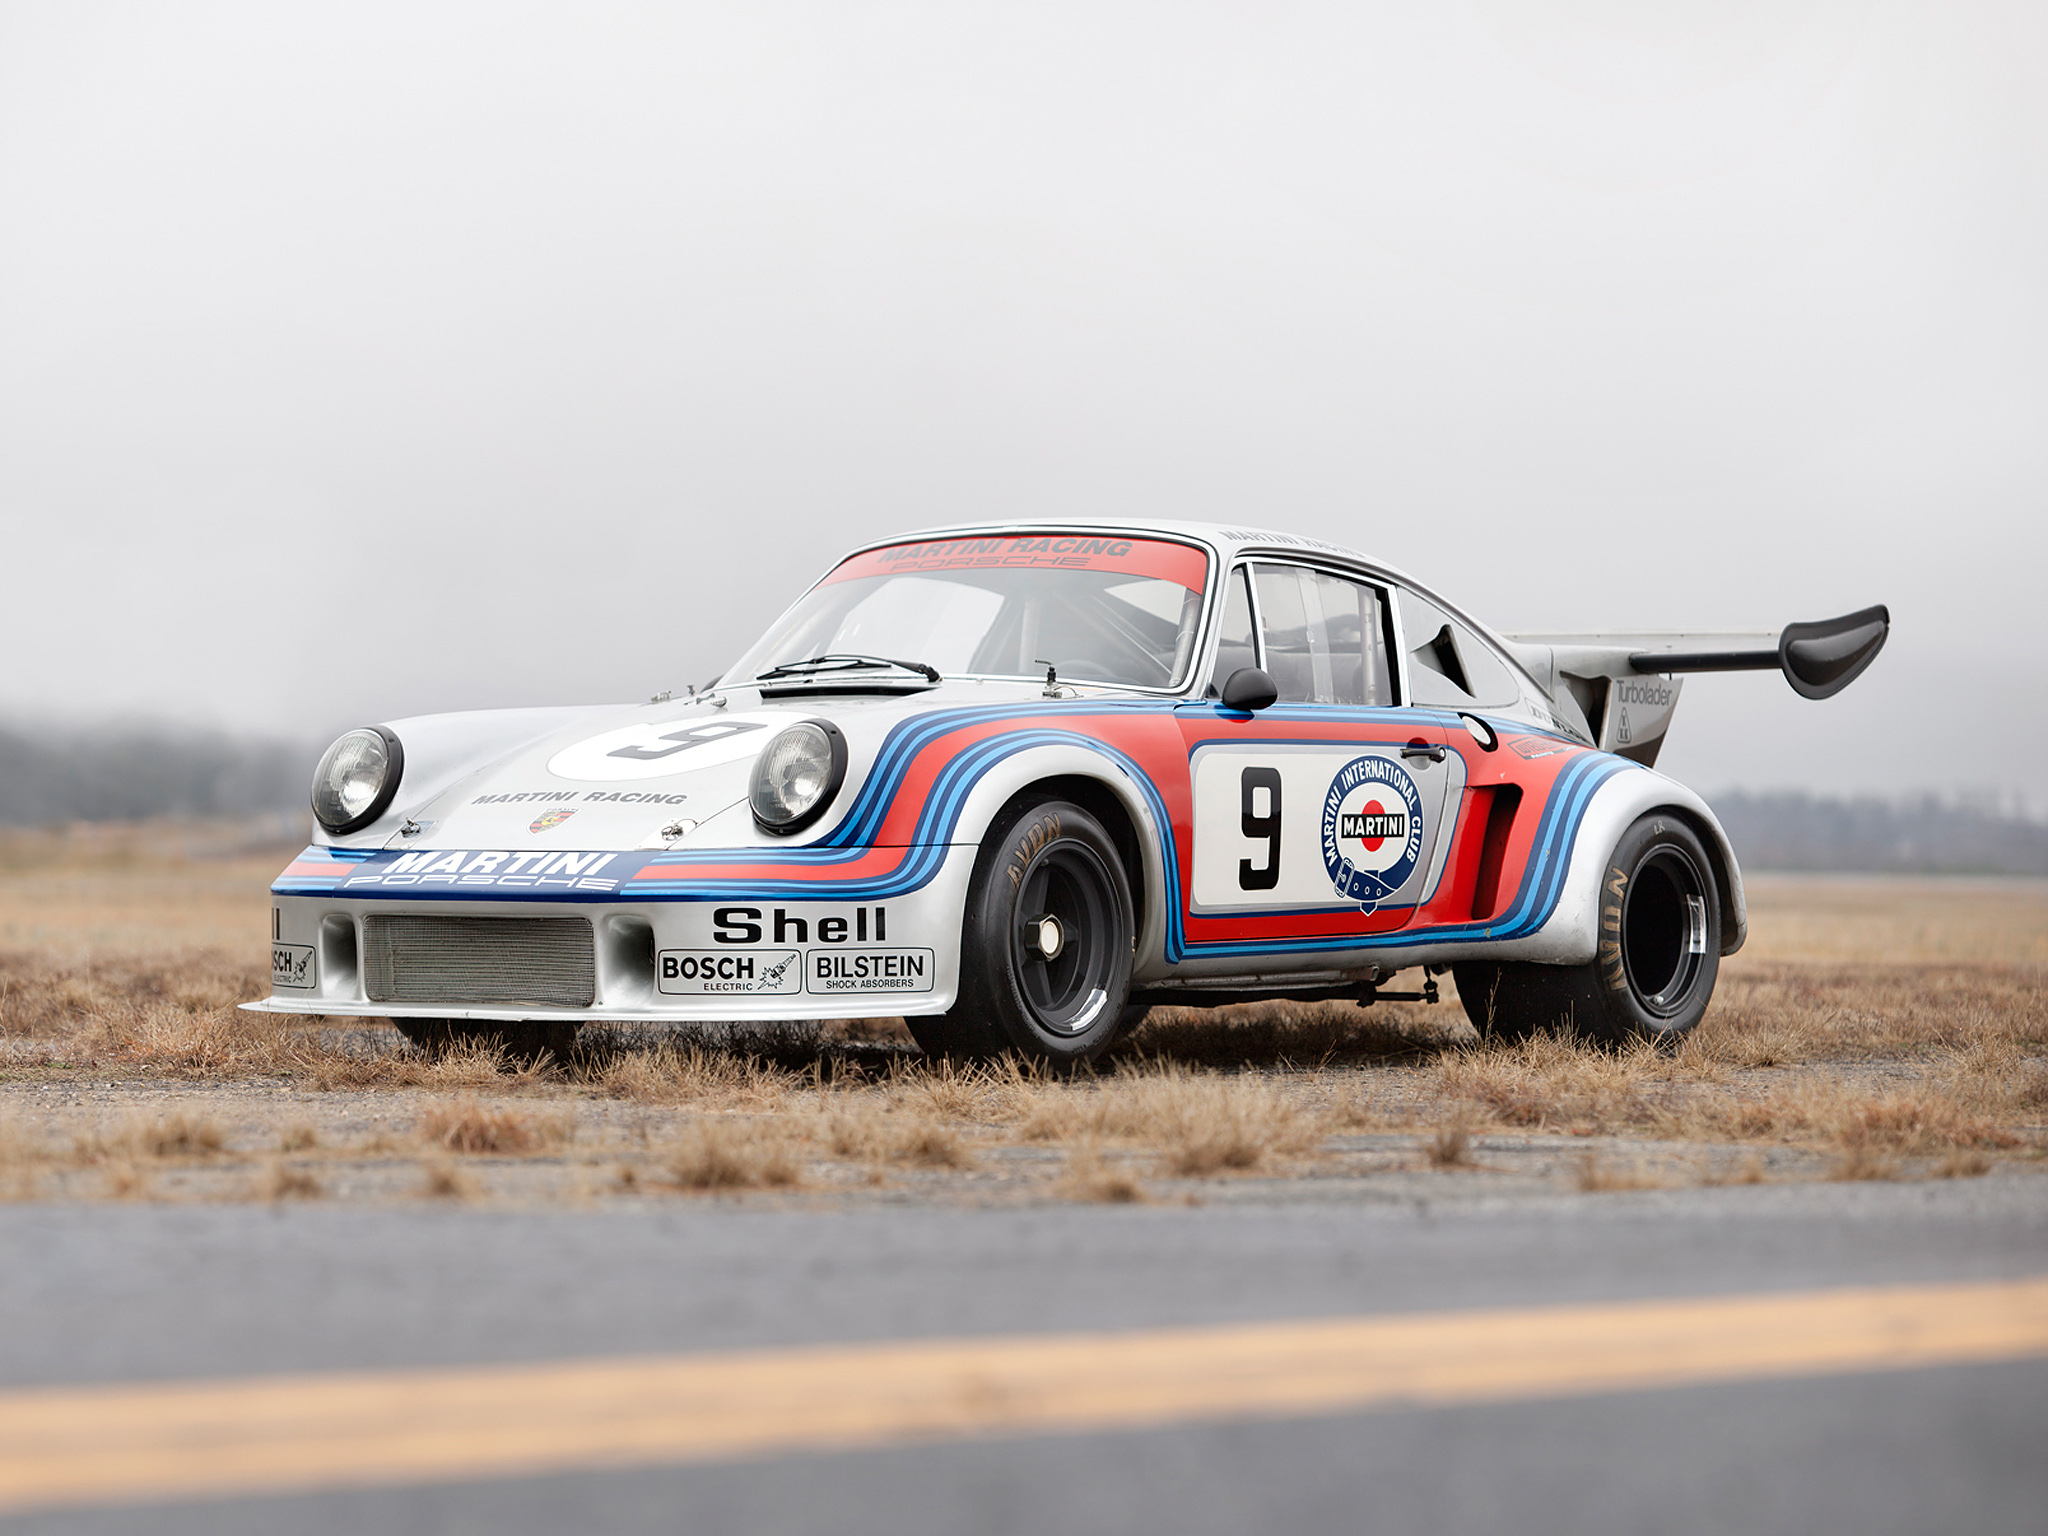 SPECULATION] Porsche cars that you think are coming to RRE3 ...